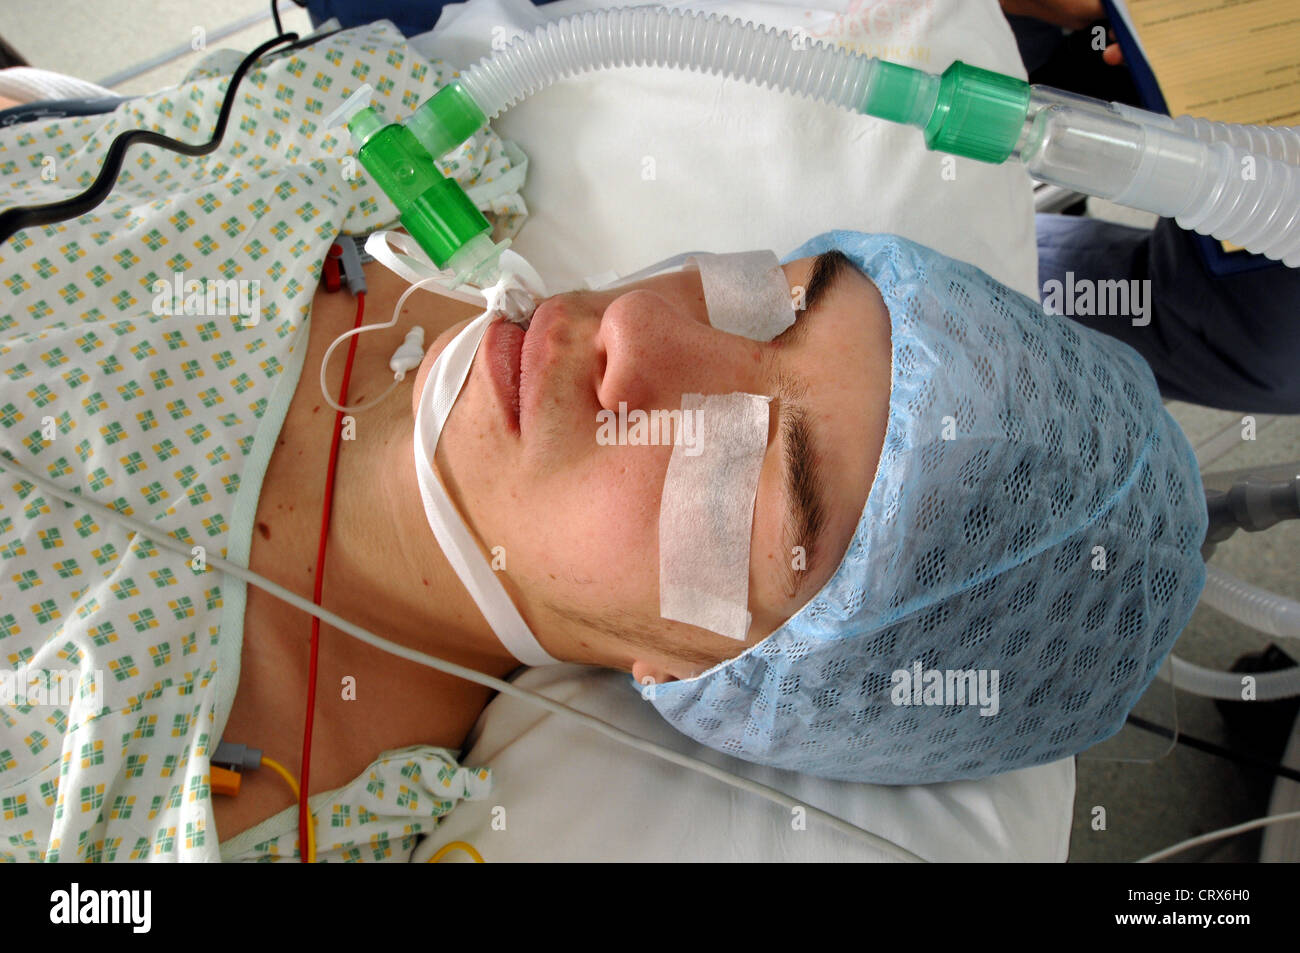 Close up of an anaesthetised male patient with tubes in the mouth linked to electronic monitoring equipment. - Stock Image